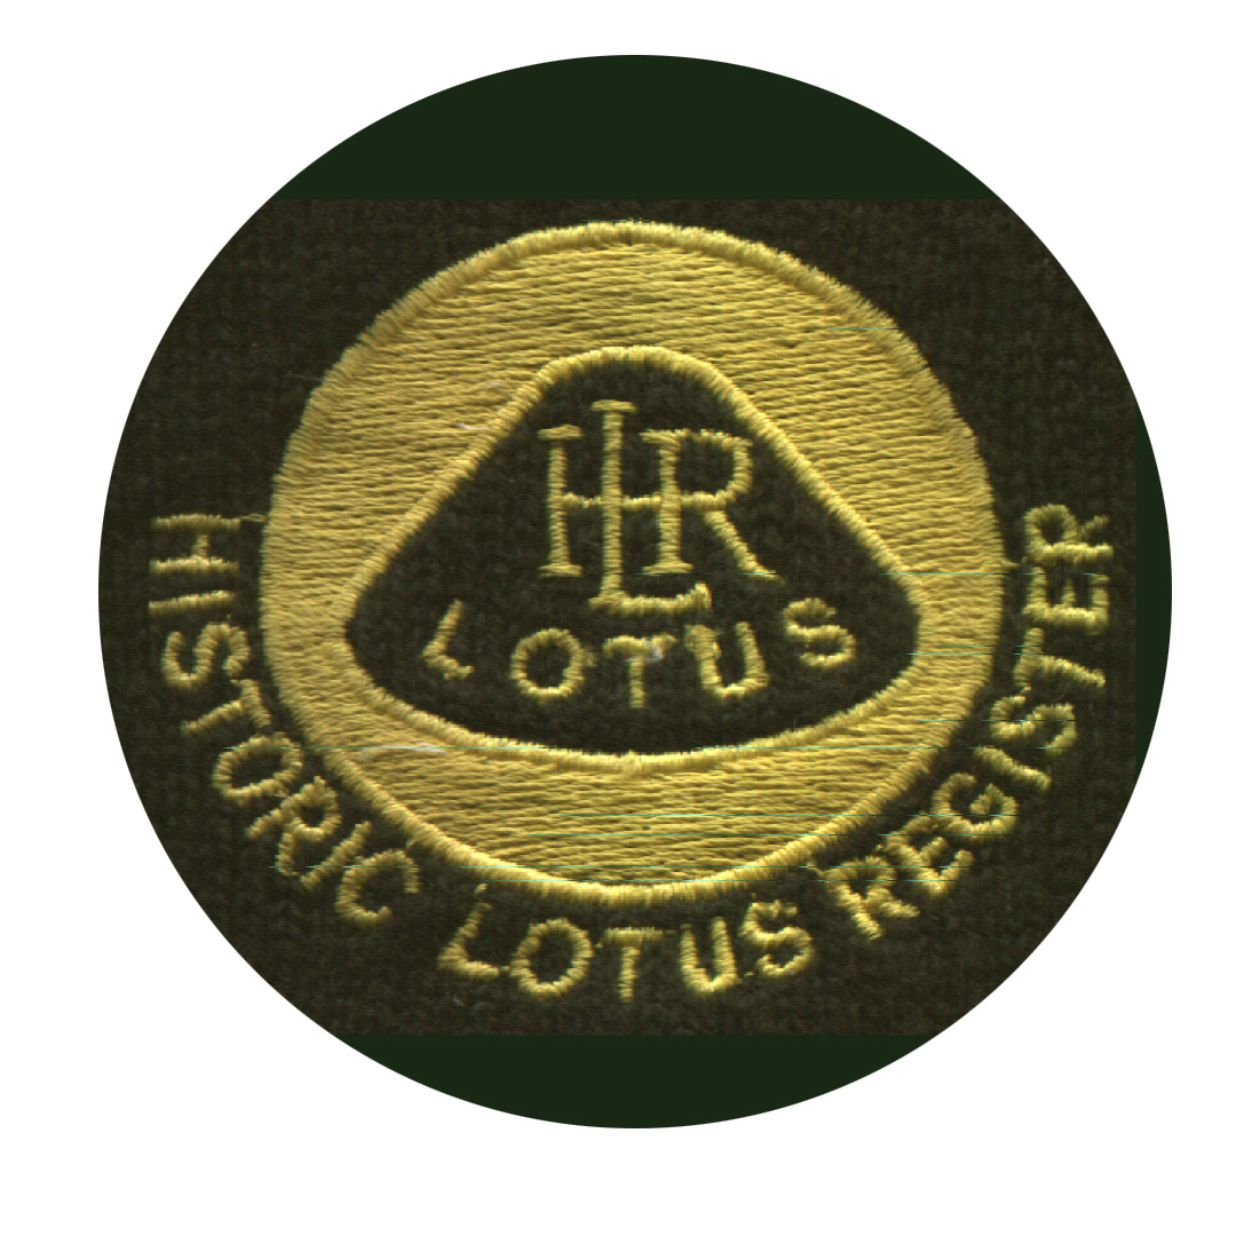 Historic Lotus Register cloth badges